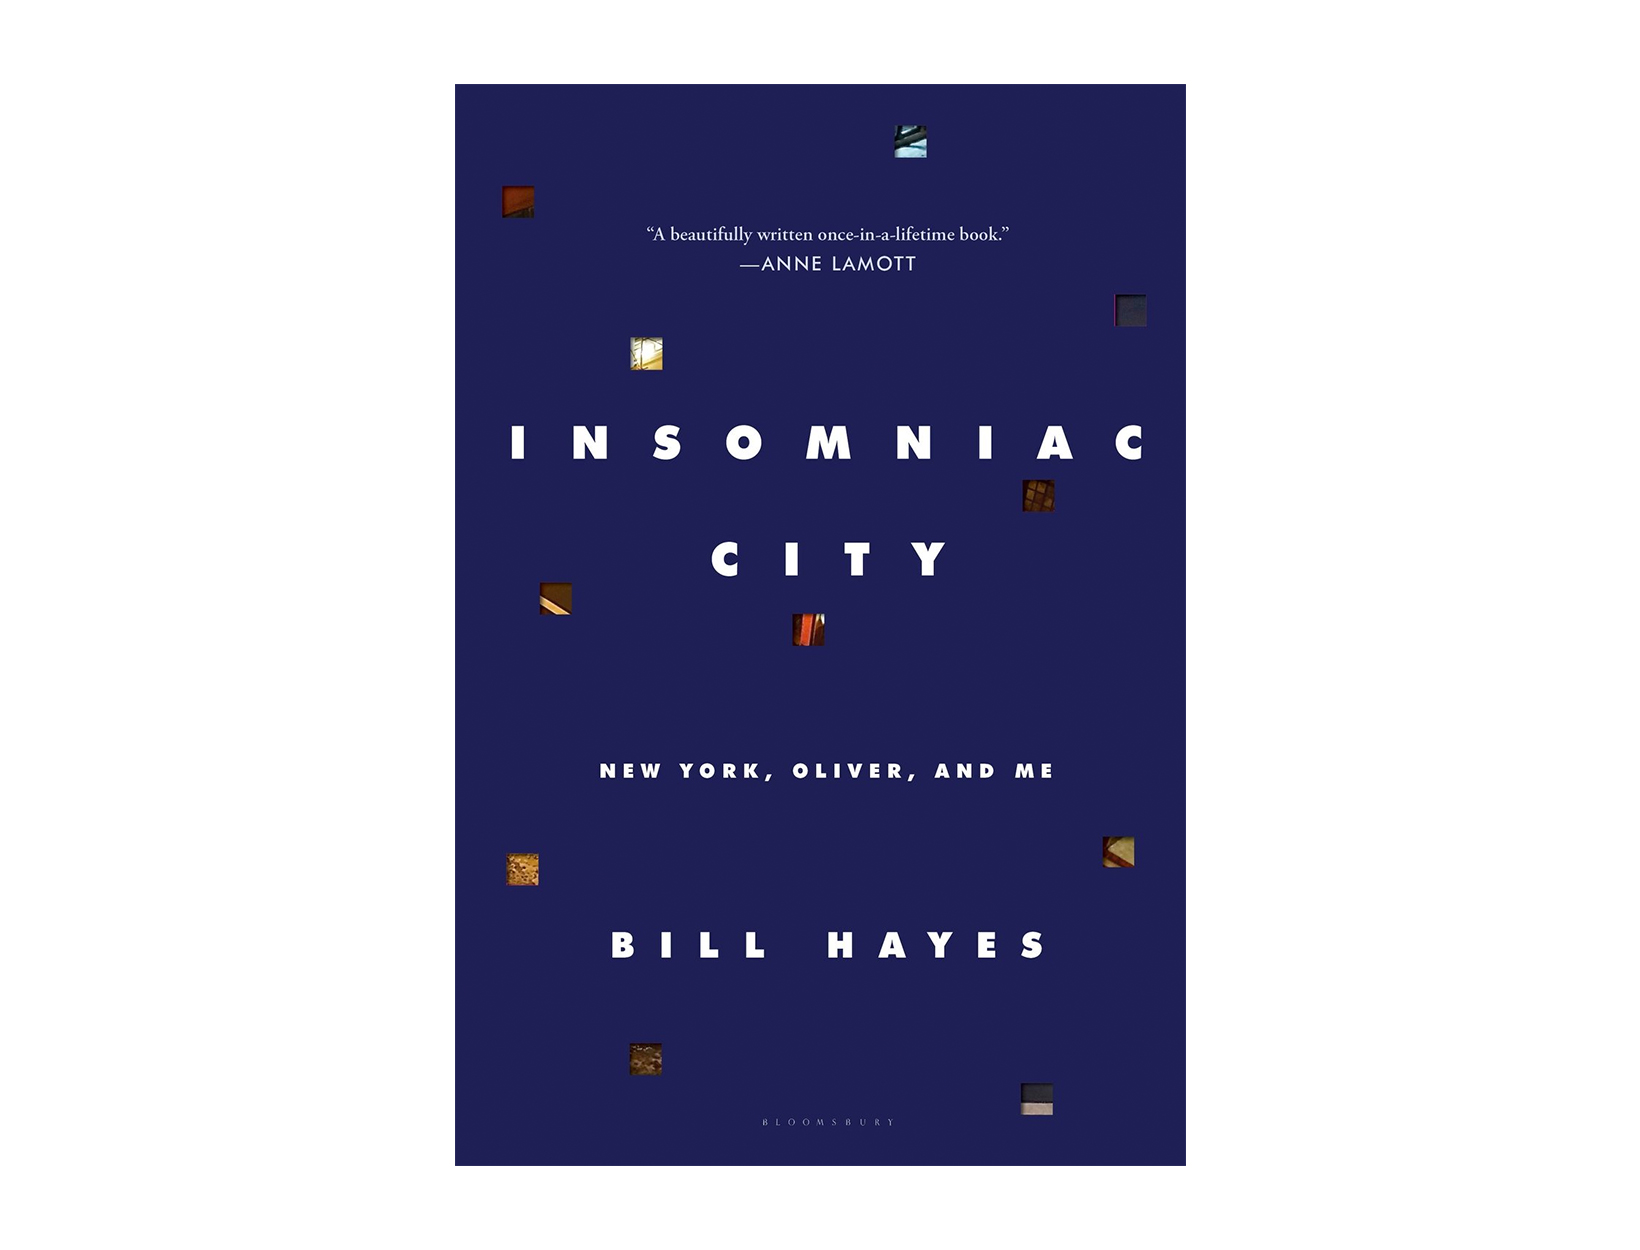 Insomniac City: New York, Oliver, and Me by Bill Hayes